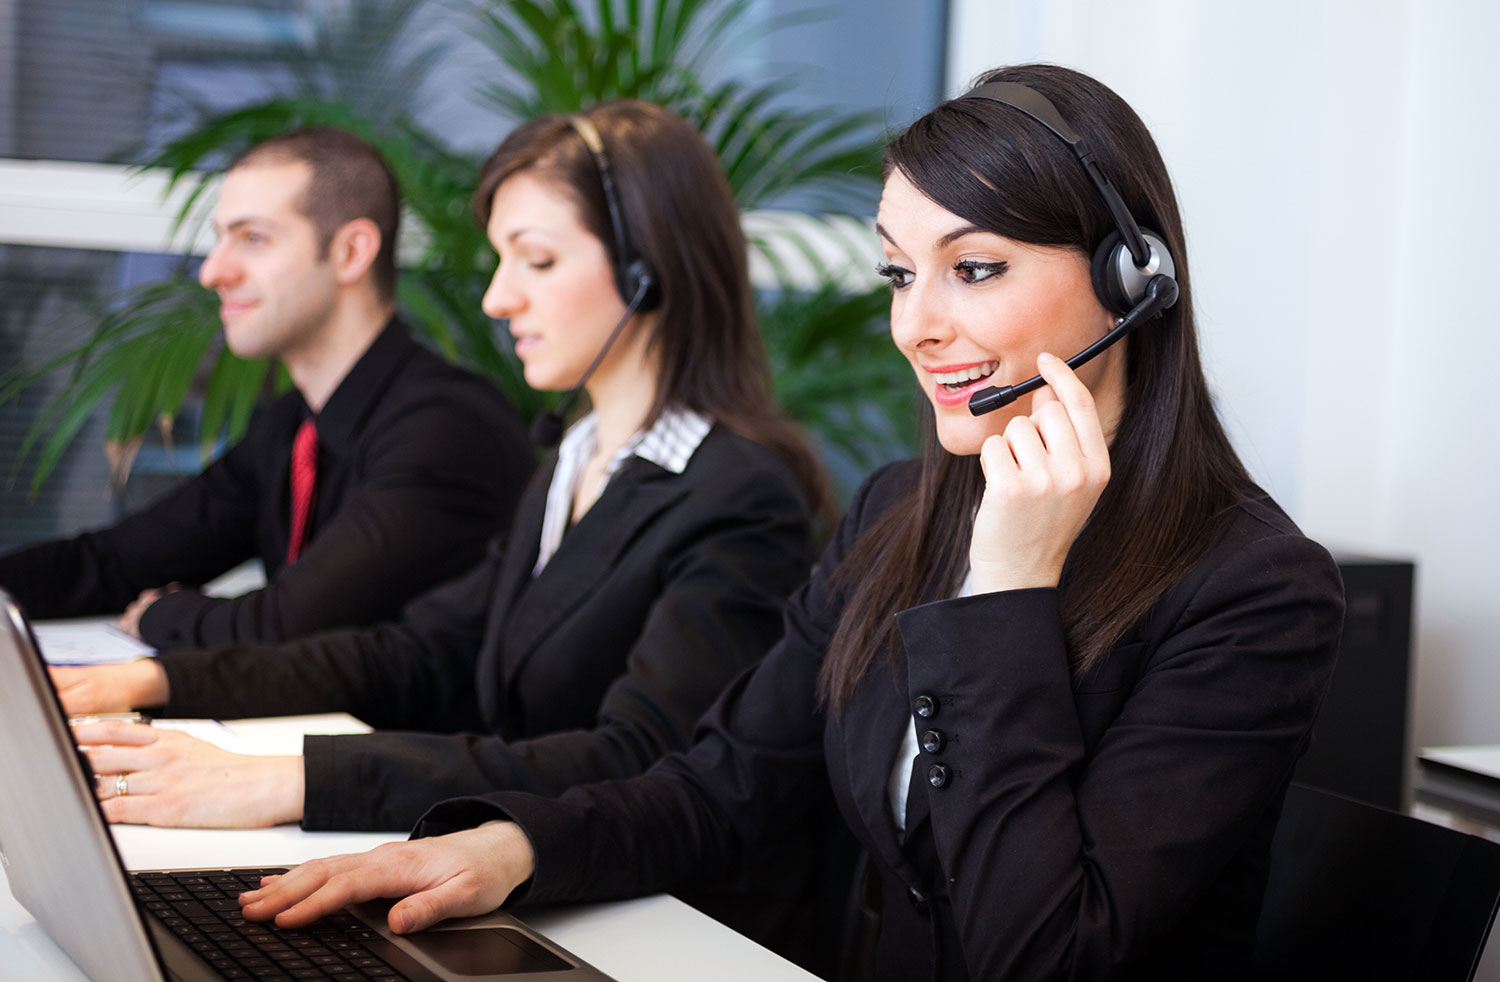 Telemarketing - Using Telephone as a Sales Tool